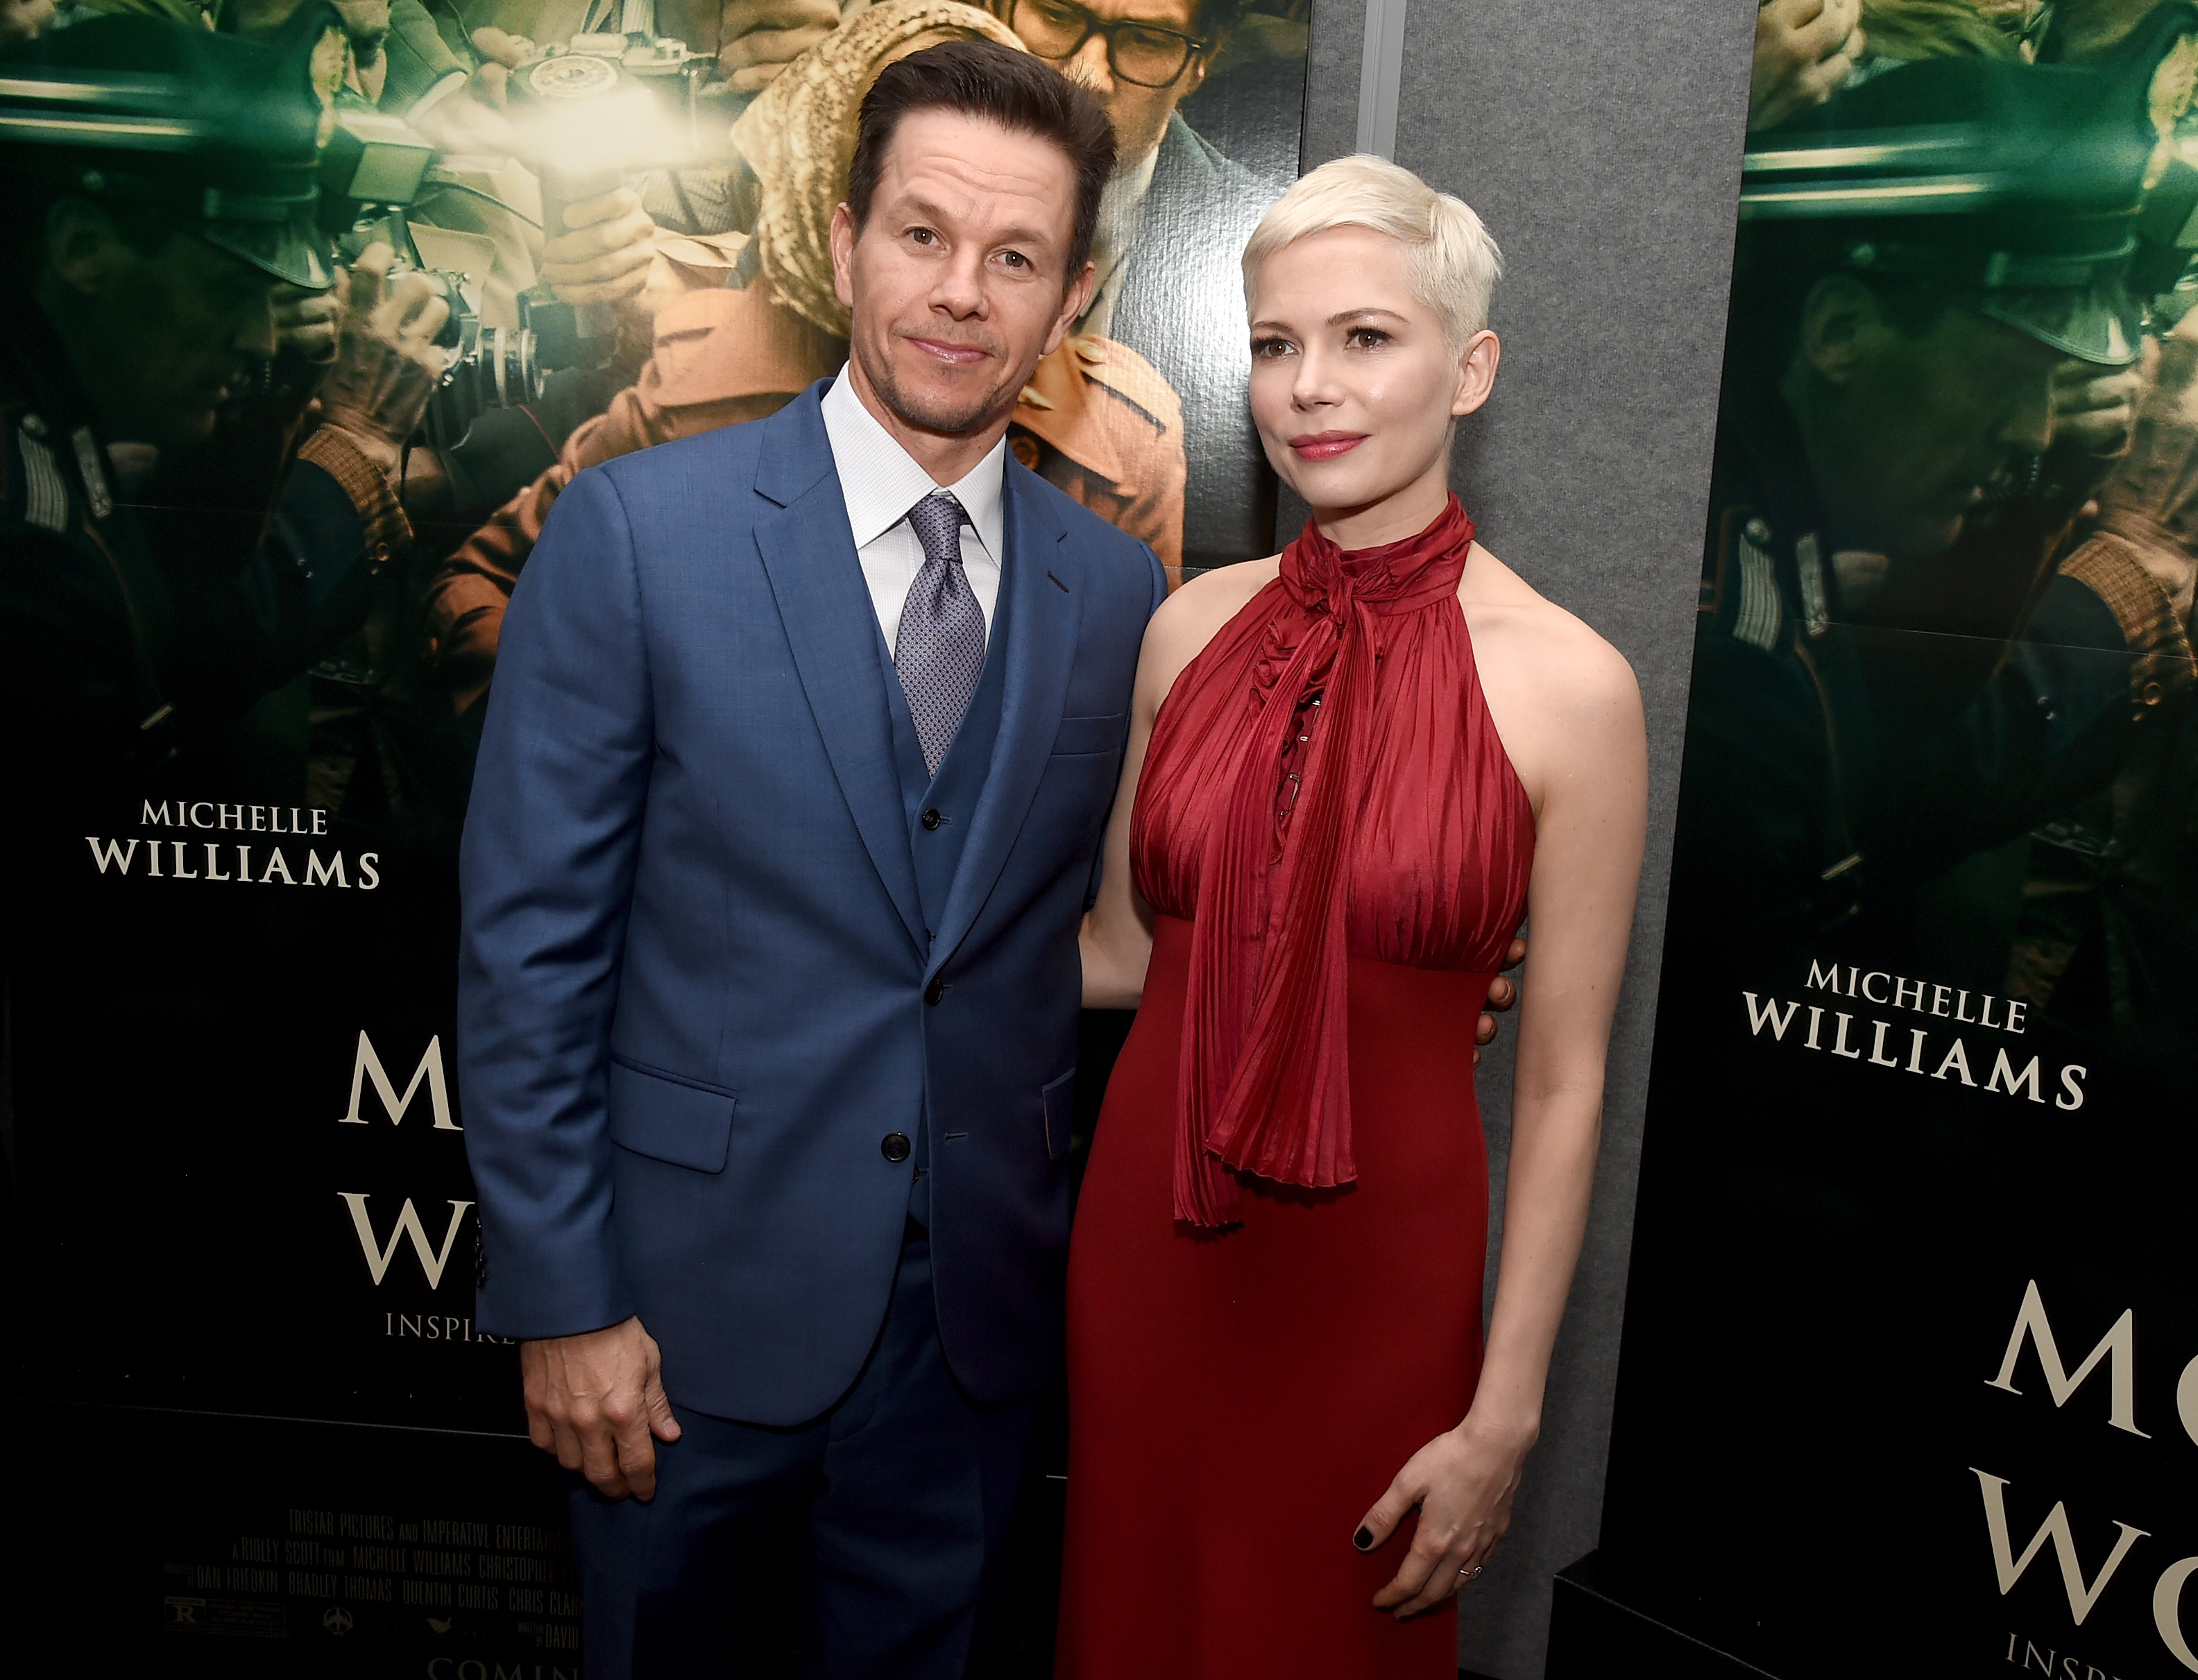 Michelle-Williams-Says-Co-Star-Mark-Wahlbergs-Decision-To-Donate-1.5-Million-To-Times-Up-Isnt-About-Her